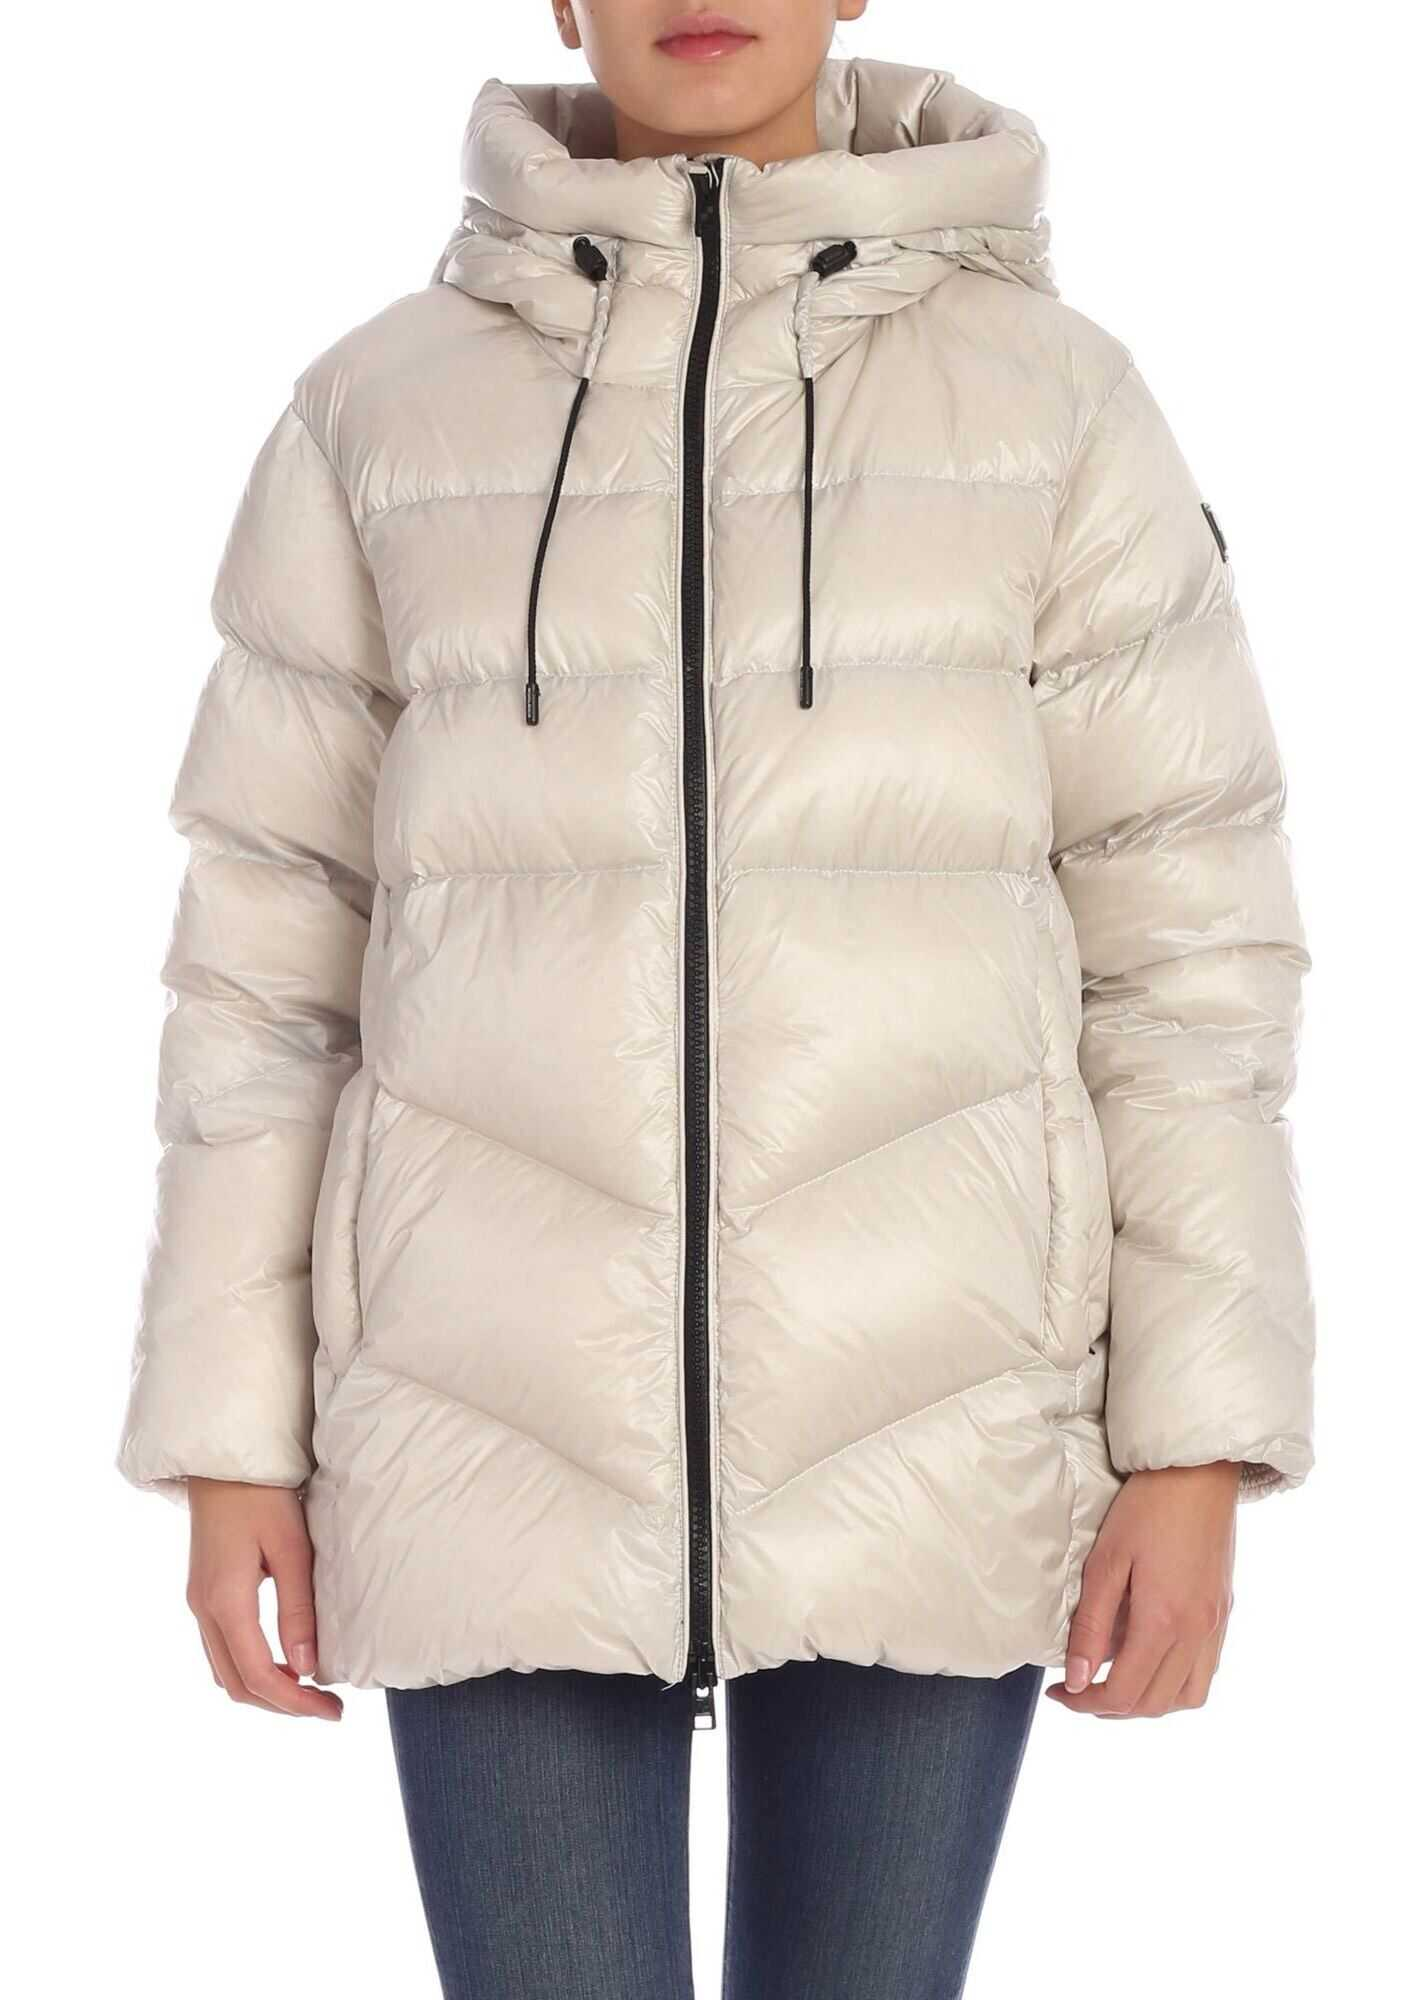 Woolrich Packable Birch Down Jacket In Ice Color Grey